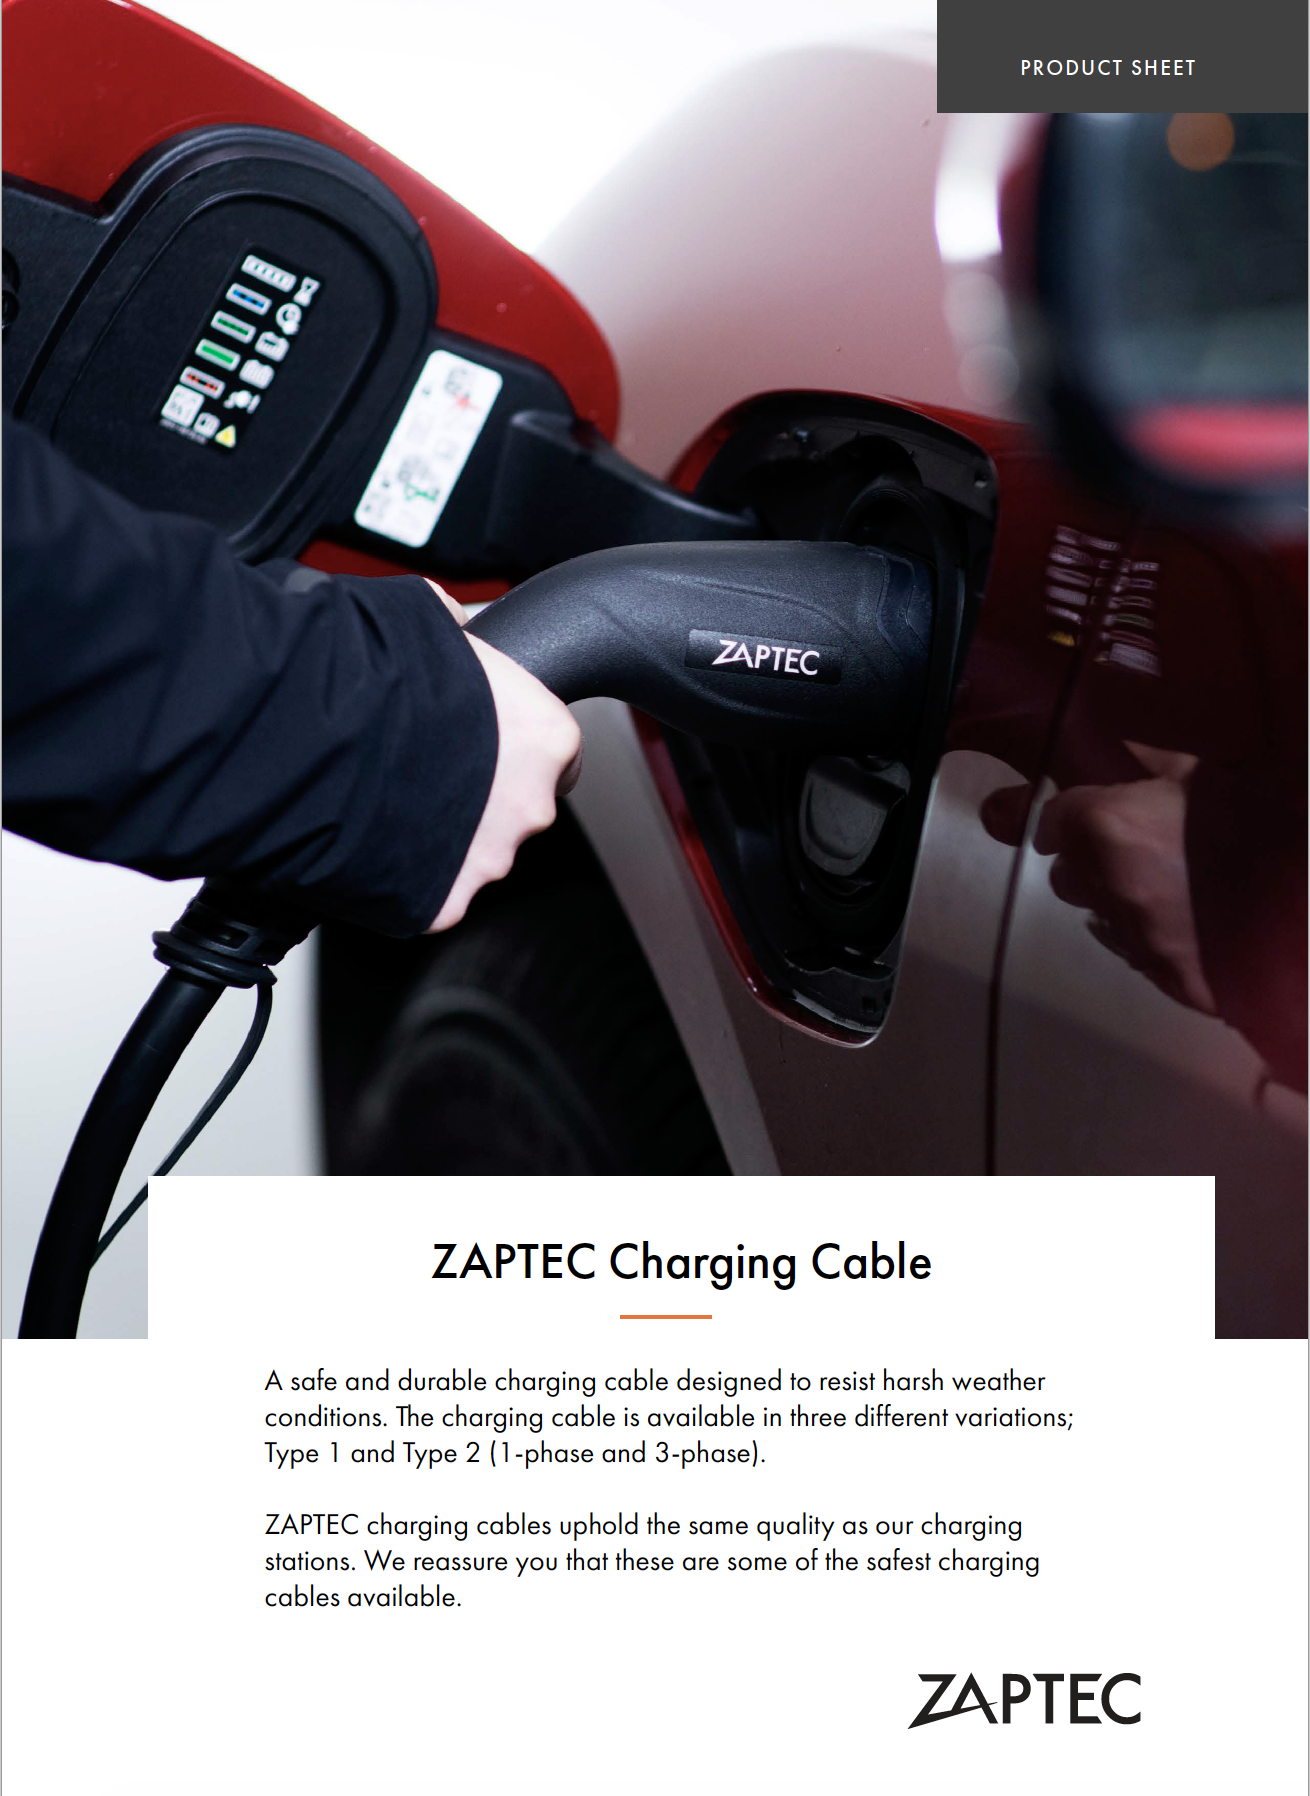 EN_-_PRODUCT_SHEET_-_ZAPTEC_CHARGING_CABLE_-_102020.png